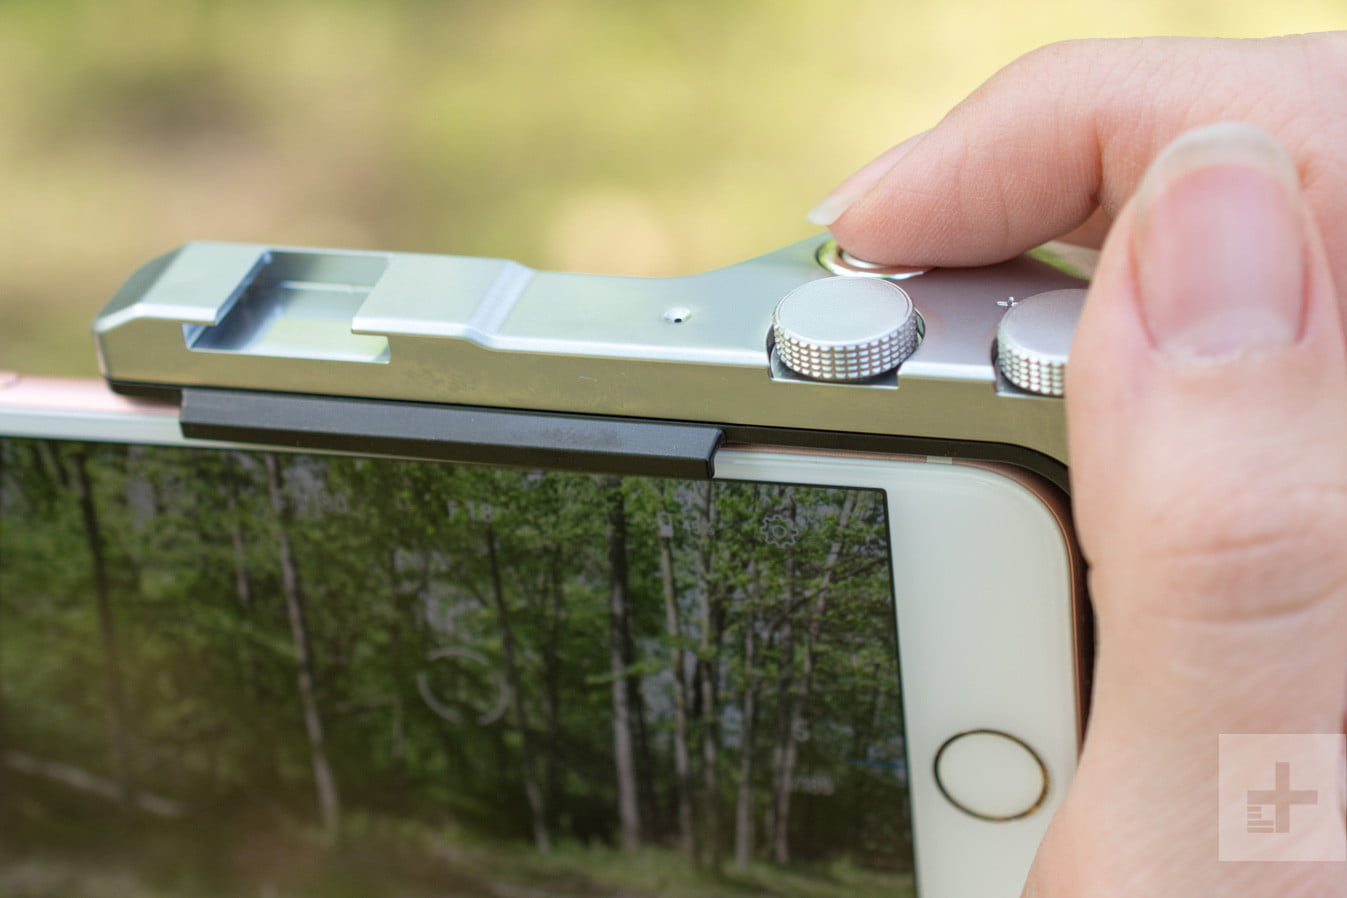 pictar iphone camera case review wm 6